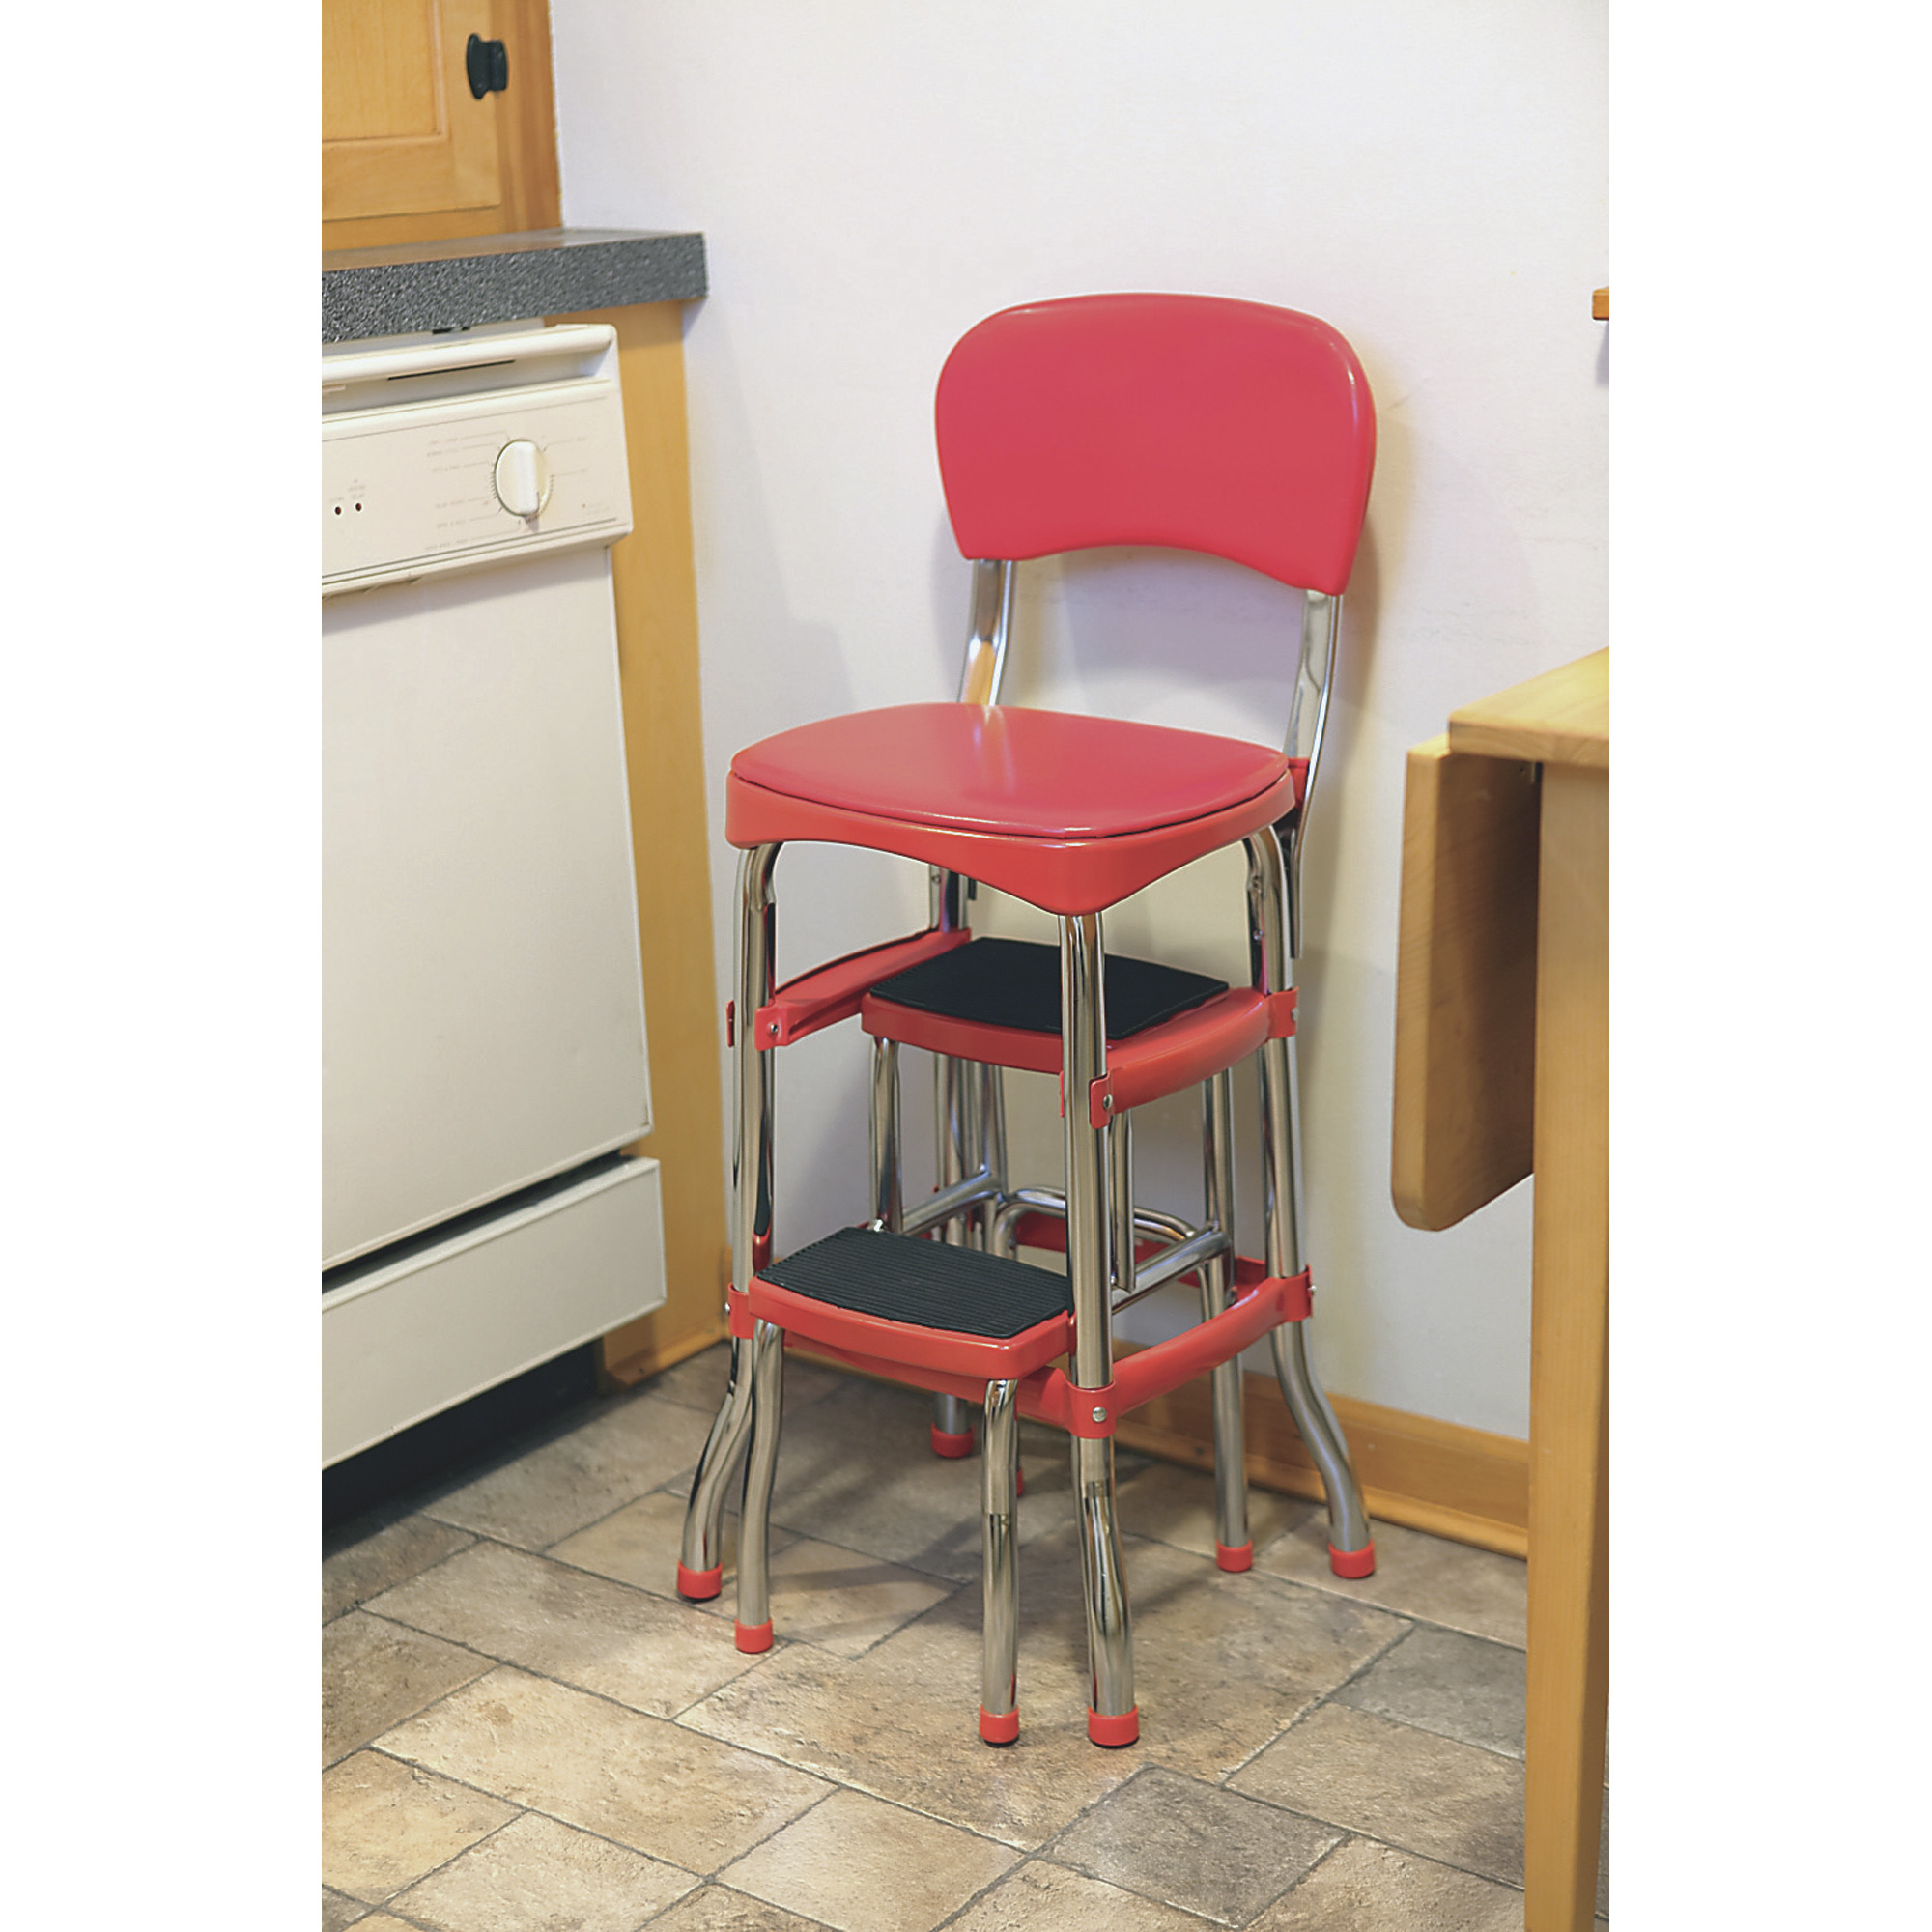 vintage kitchen chair with steps photo - 1